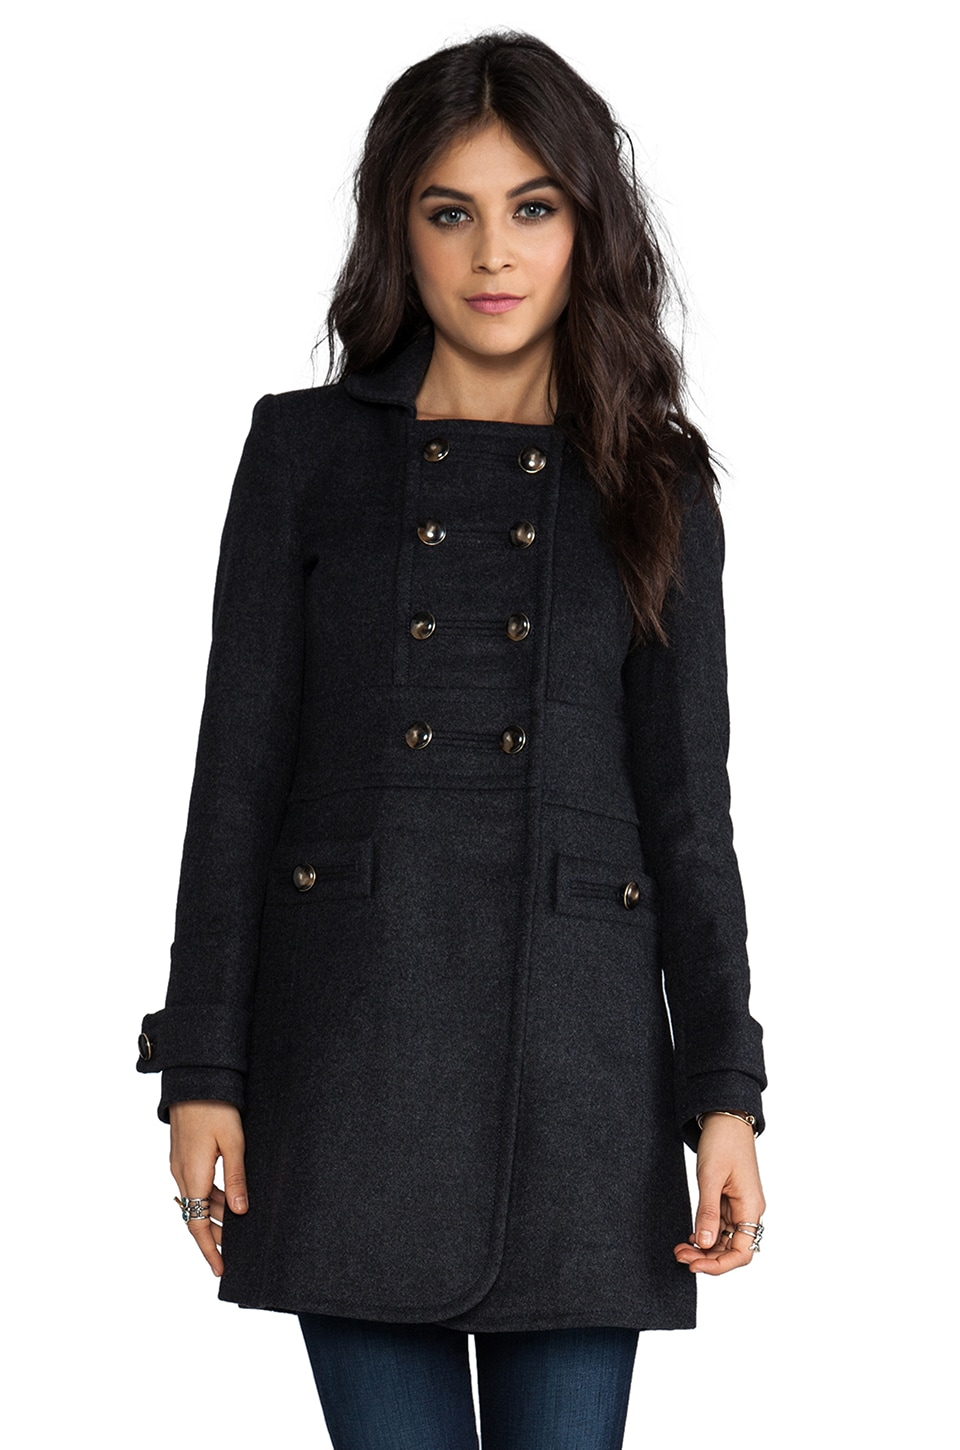 Marc by Marc Jacobs Nicolette Wool Coat in Dark Charcoal Melange